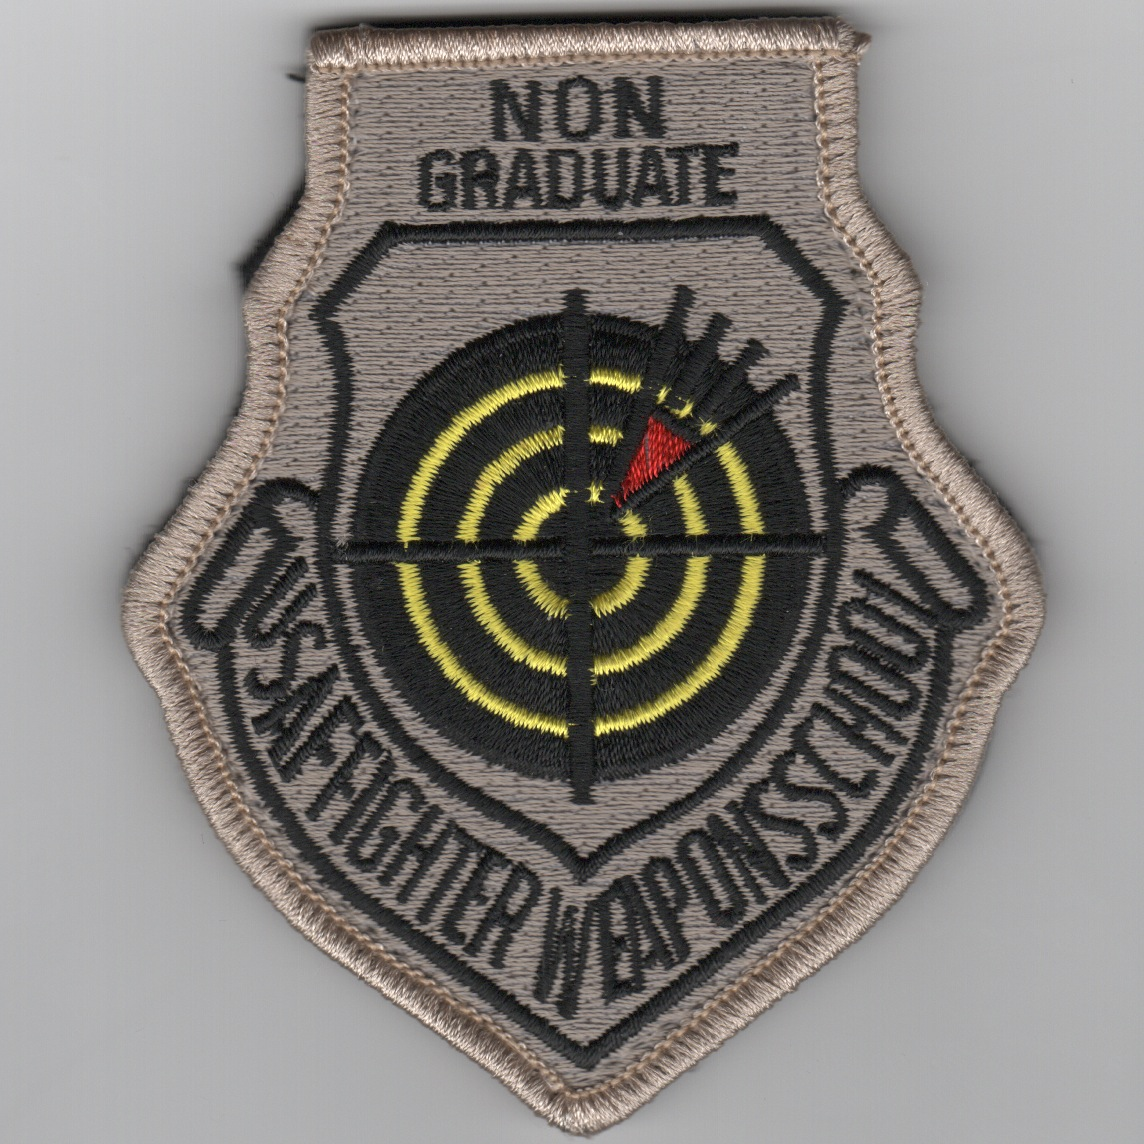 USAF FIGHTER Weapons School NON-Graduate Patch (No Velcro)